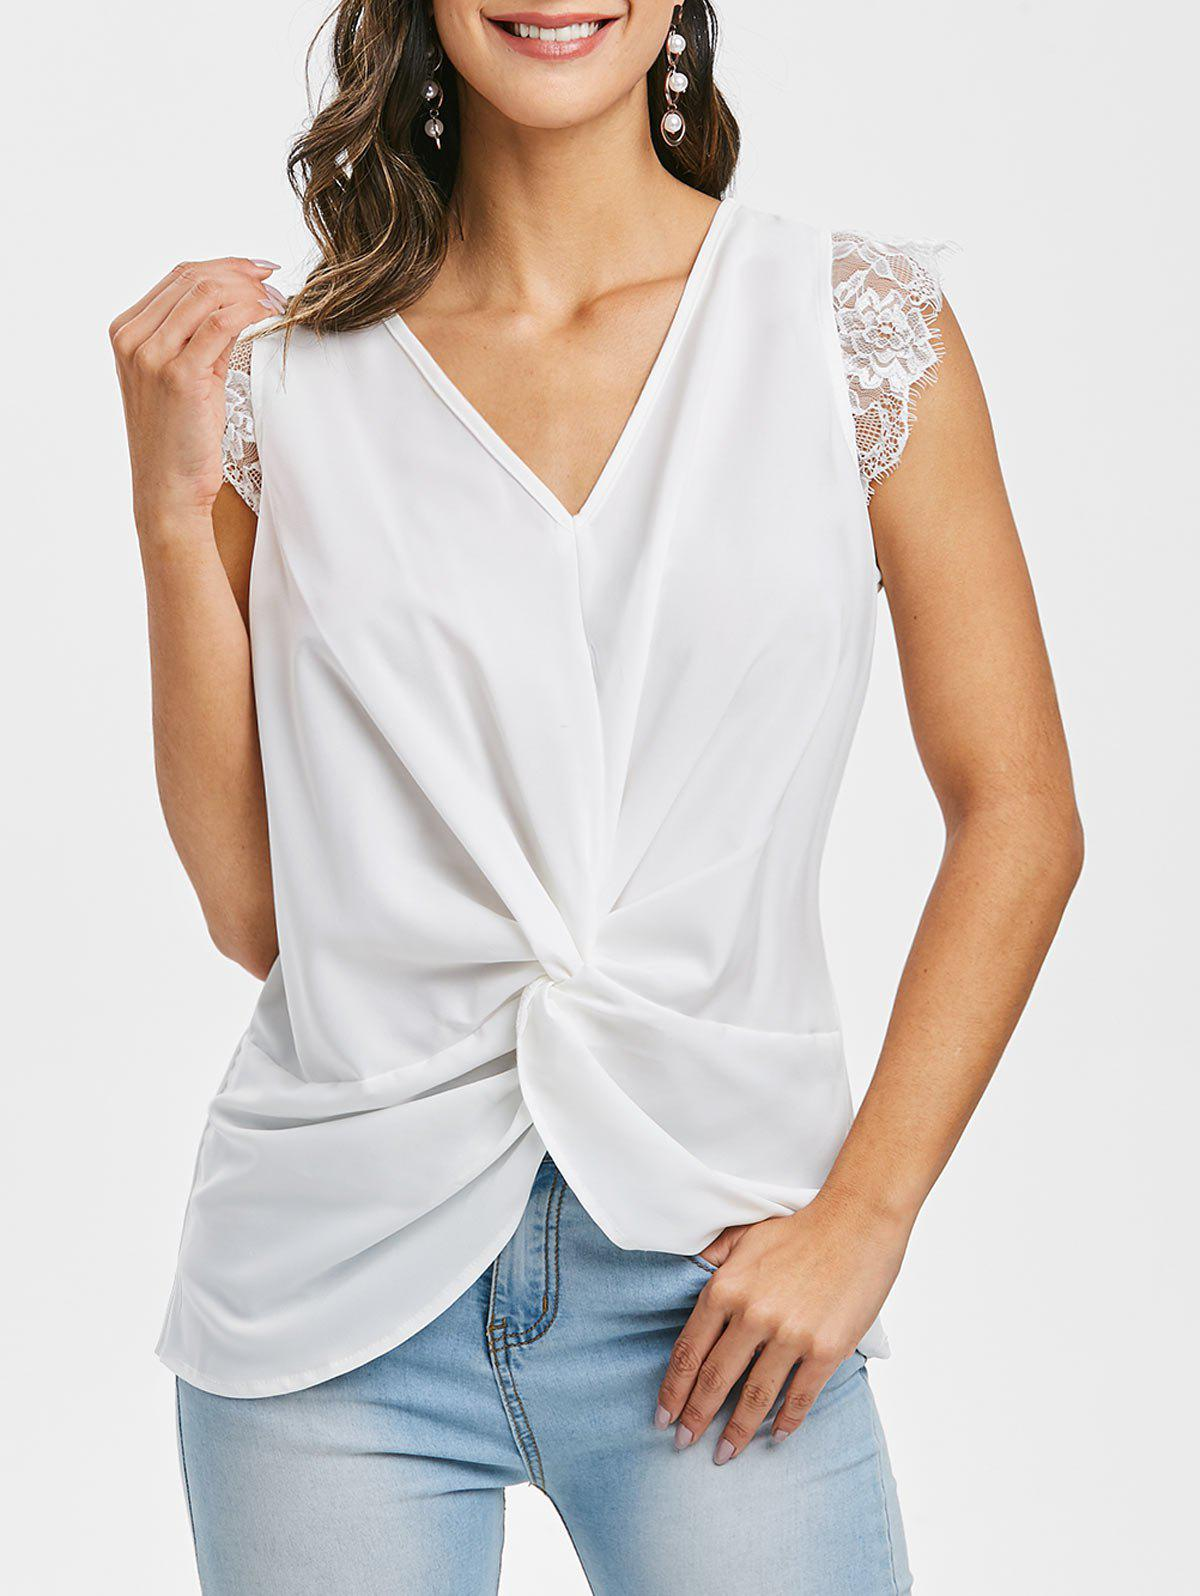 Empiècements en dentelle Plongeant Twisted Tank Top - Blanc L